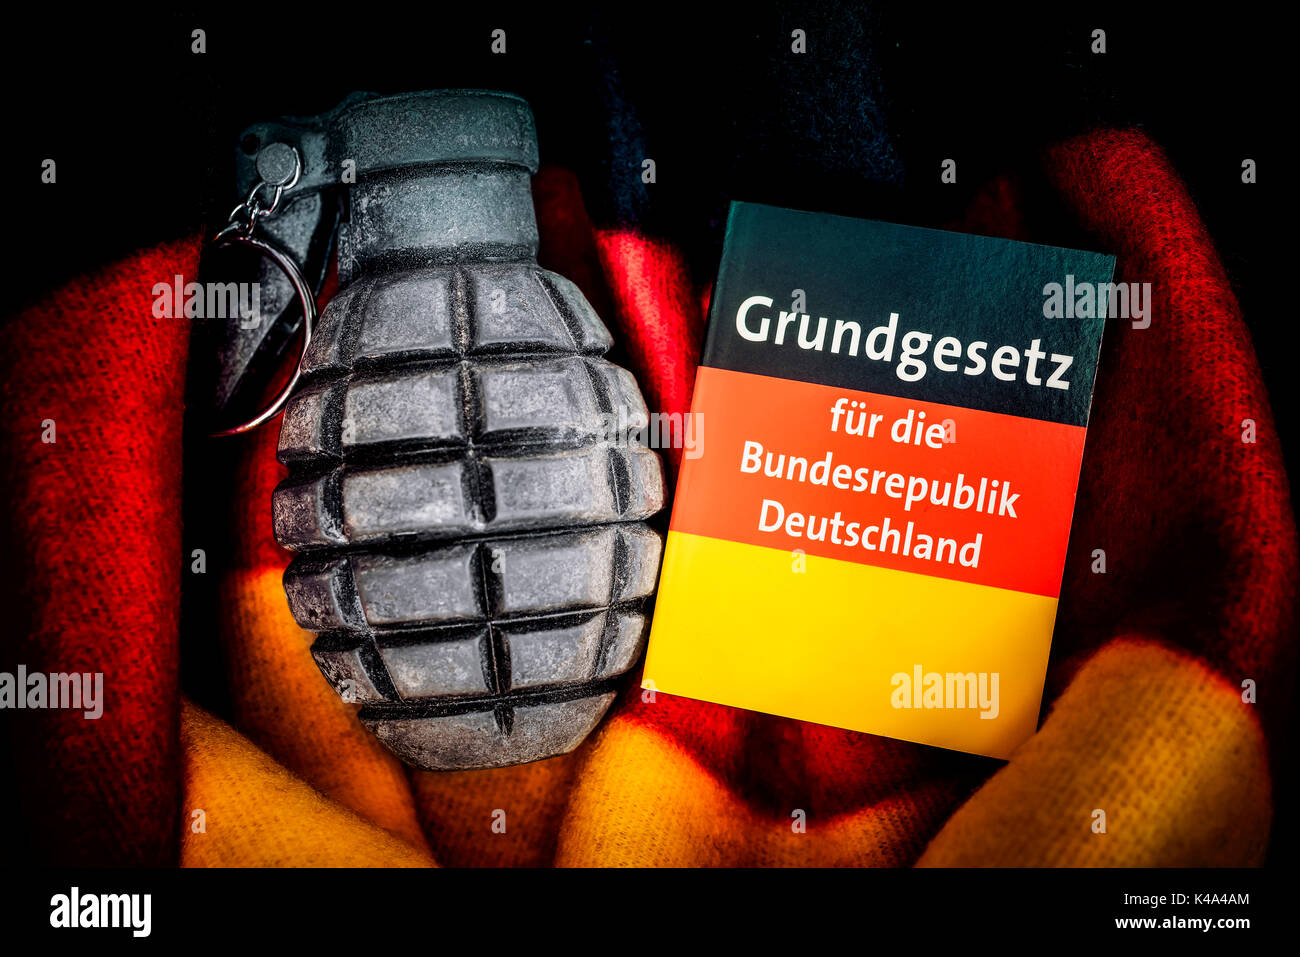 Basic Law For The Federal Republic Of Germany And Hand Grenade, Extremism Threat - Stock Image